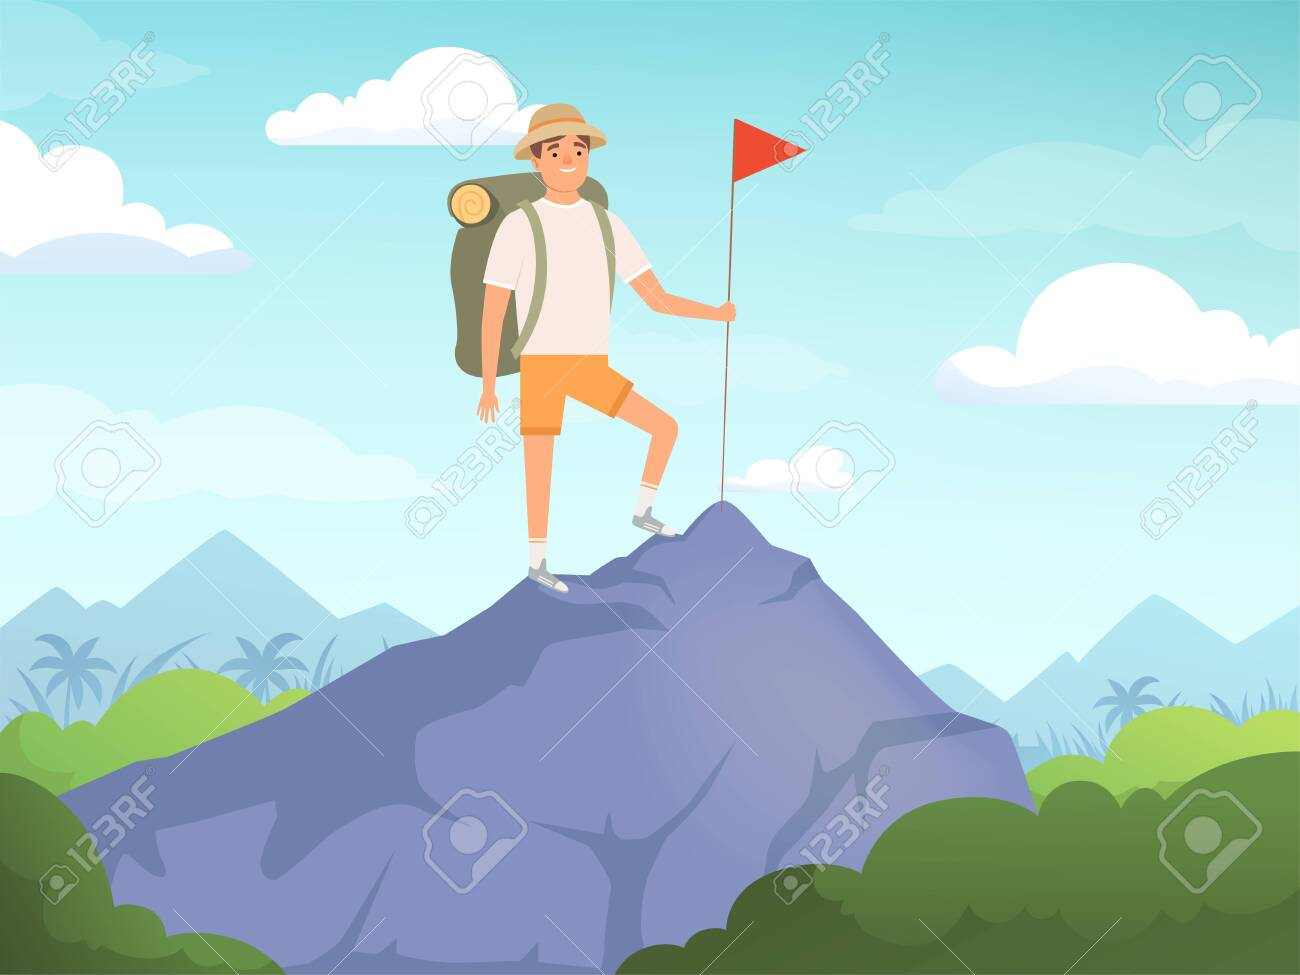 Camping characters. Hiking background people travelling nature vector concept. Illustration of tourist and tourism vacation, character outdoor hiking - 126531185